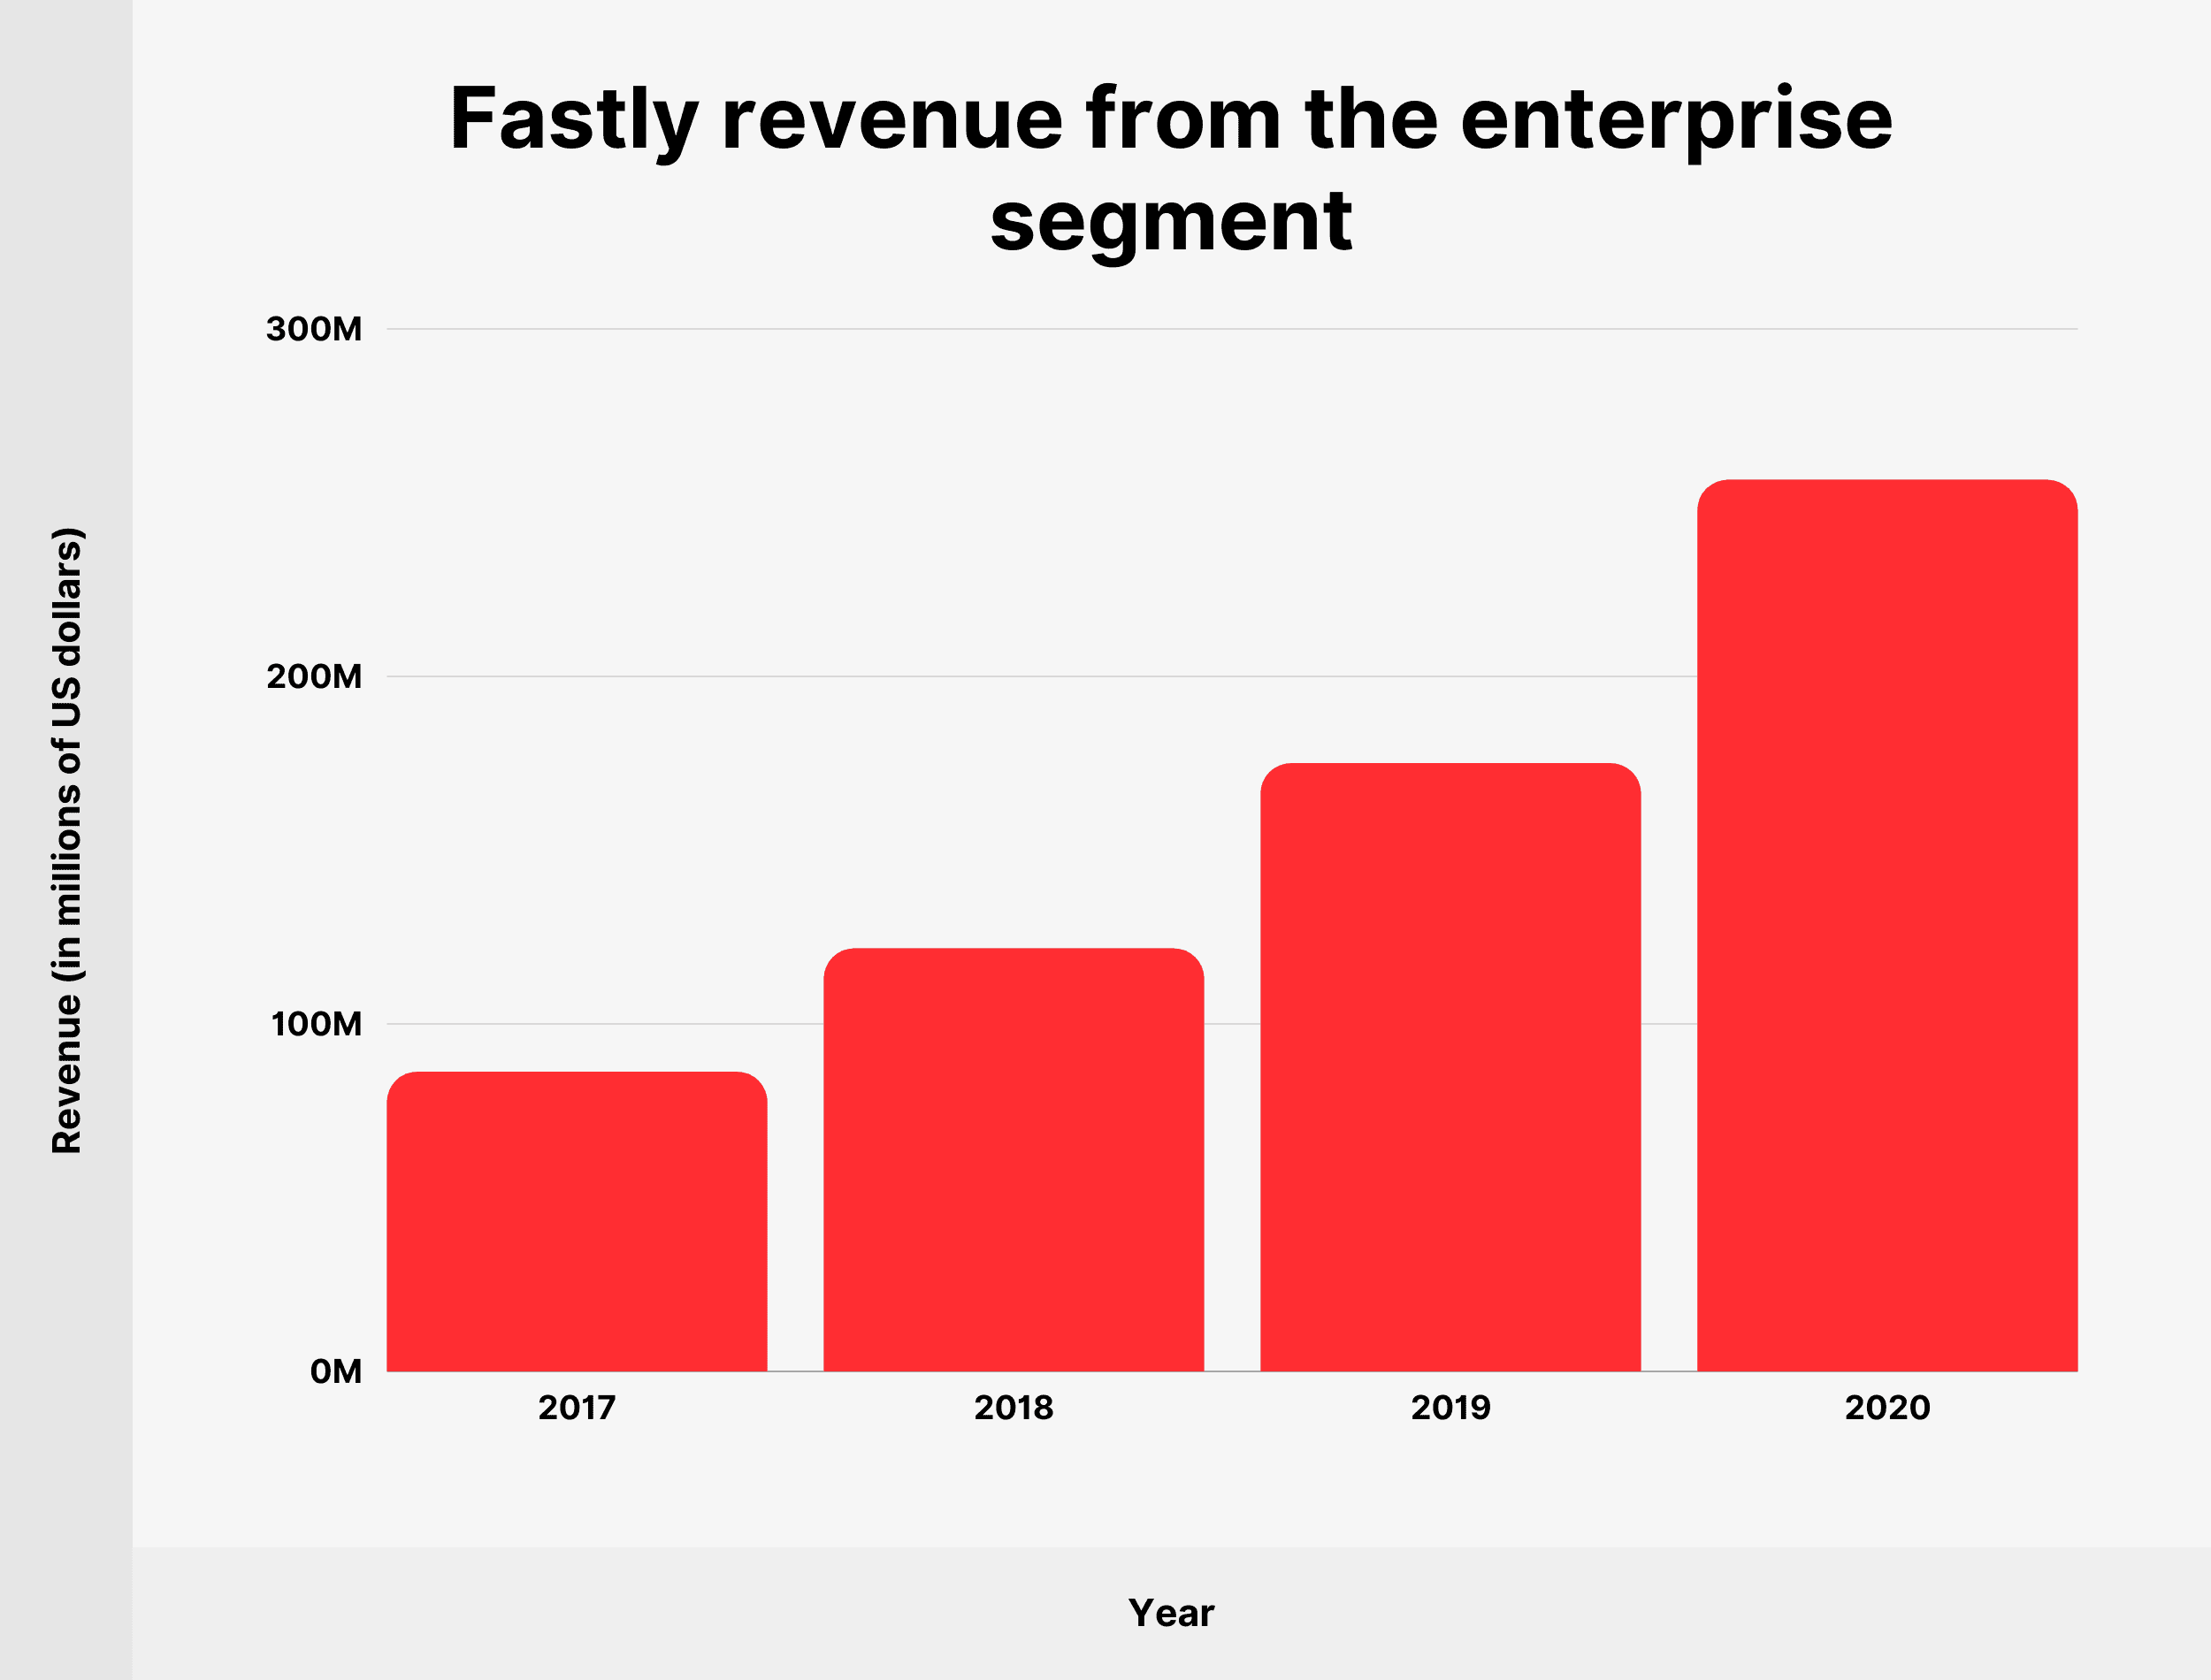 Fastly revenue from the enterprise segment